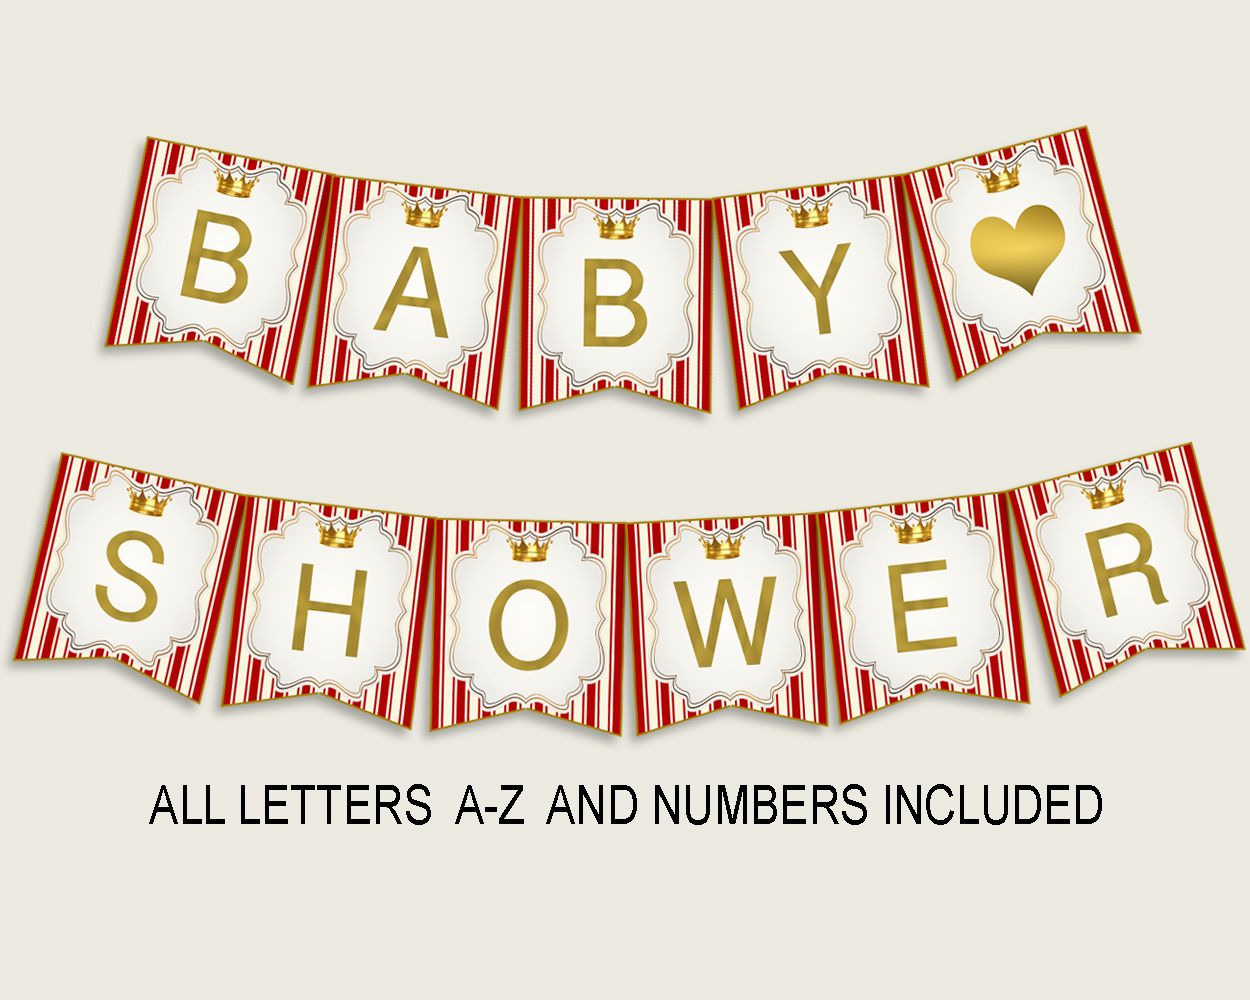 Full Size of Baby Shower:89+ Indulging Baby Shower Banner Picture Inspirations Baby Shower Banner Baby Shower Name Banners Best Of Banner Baby Shower Banner Prince Baby Shower Banner Red Gold